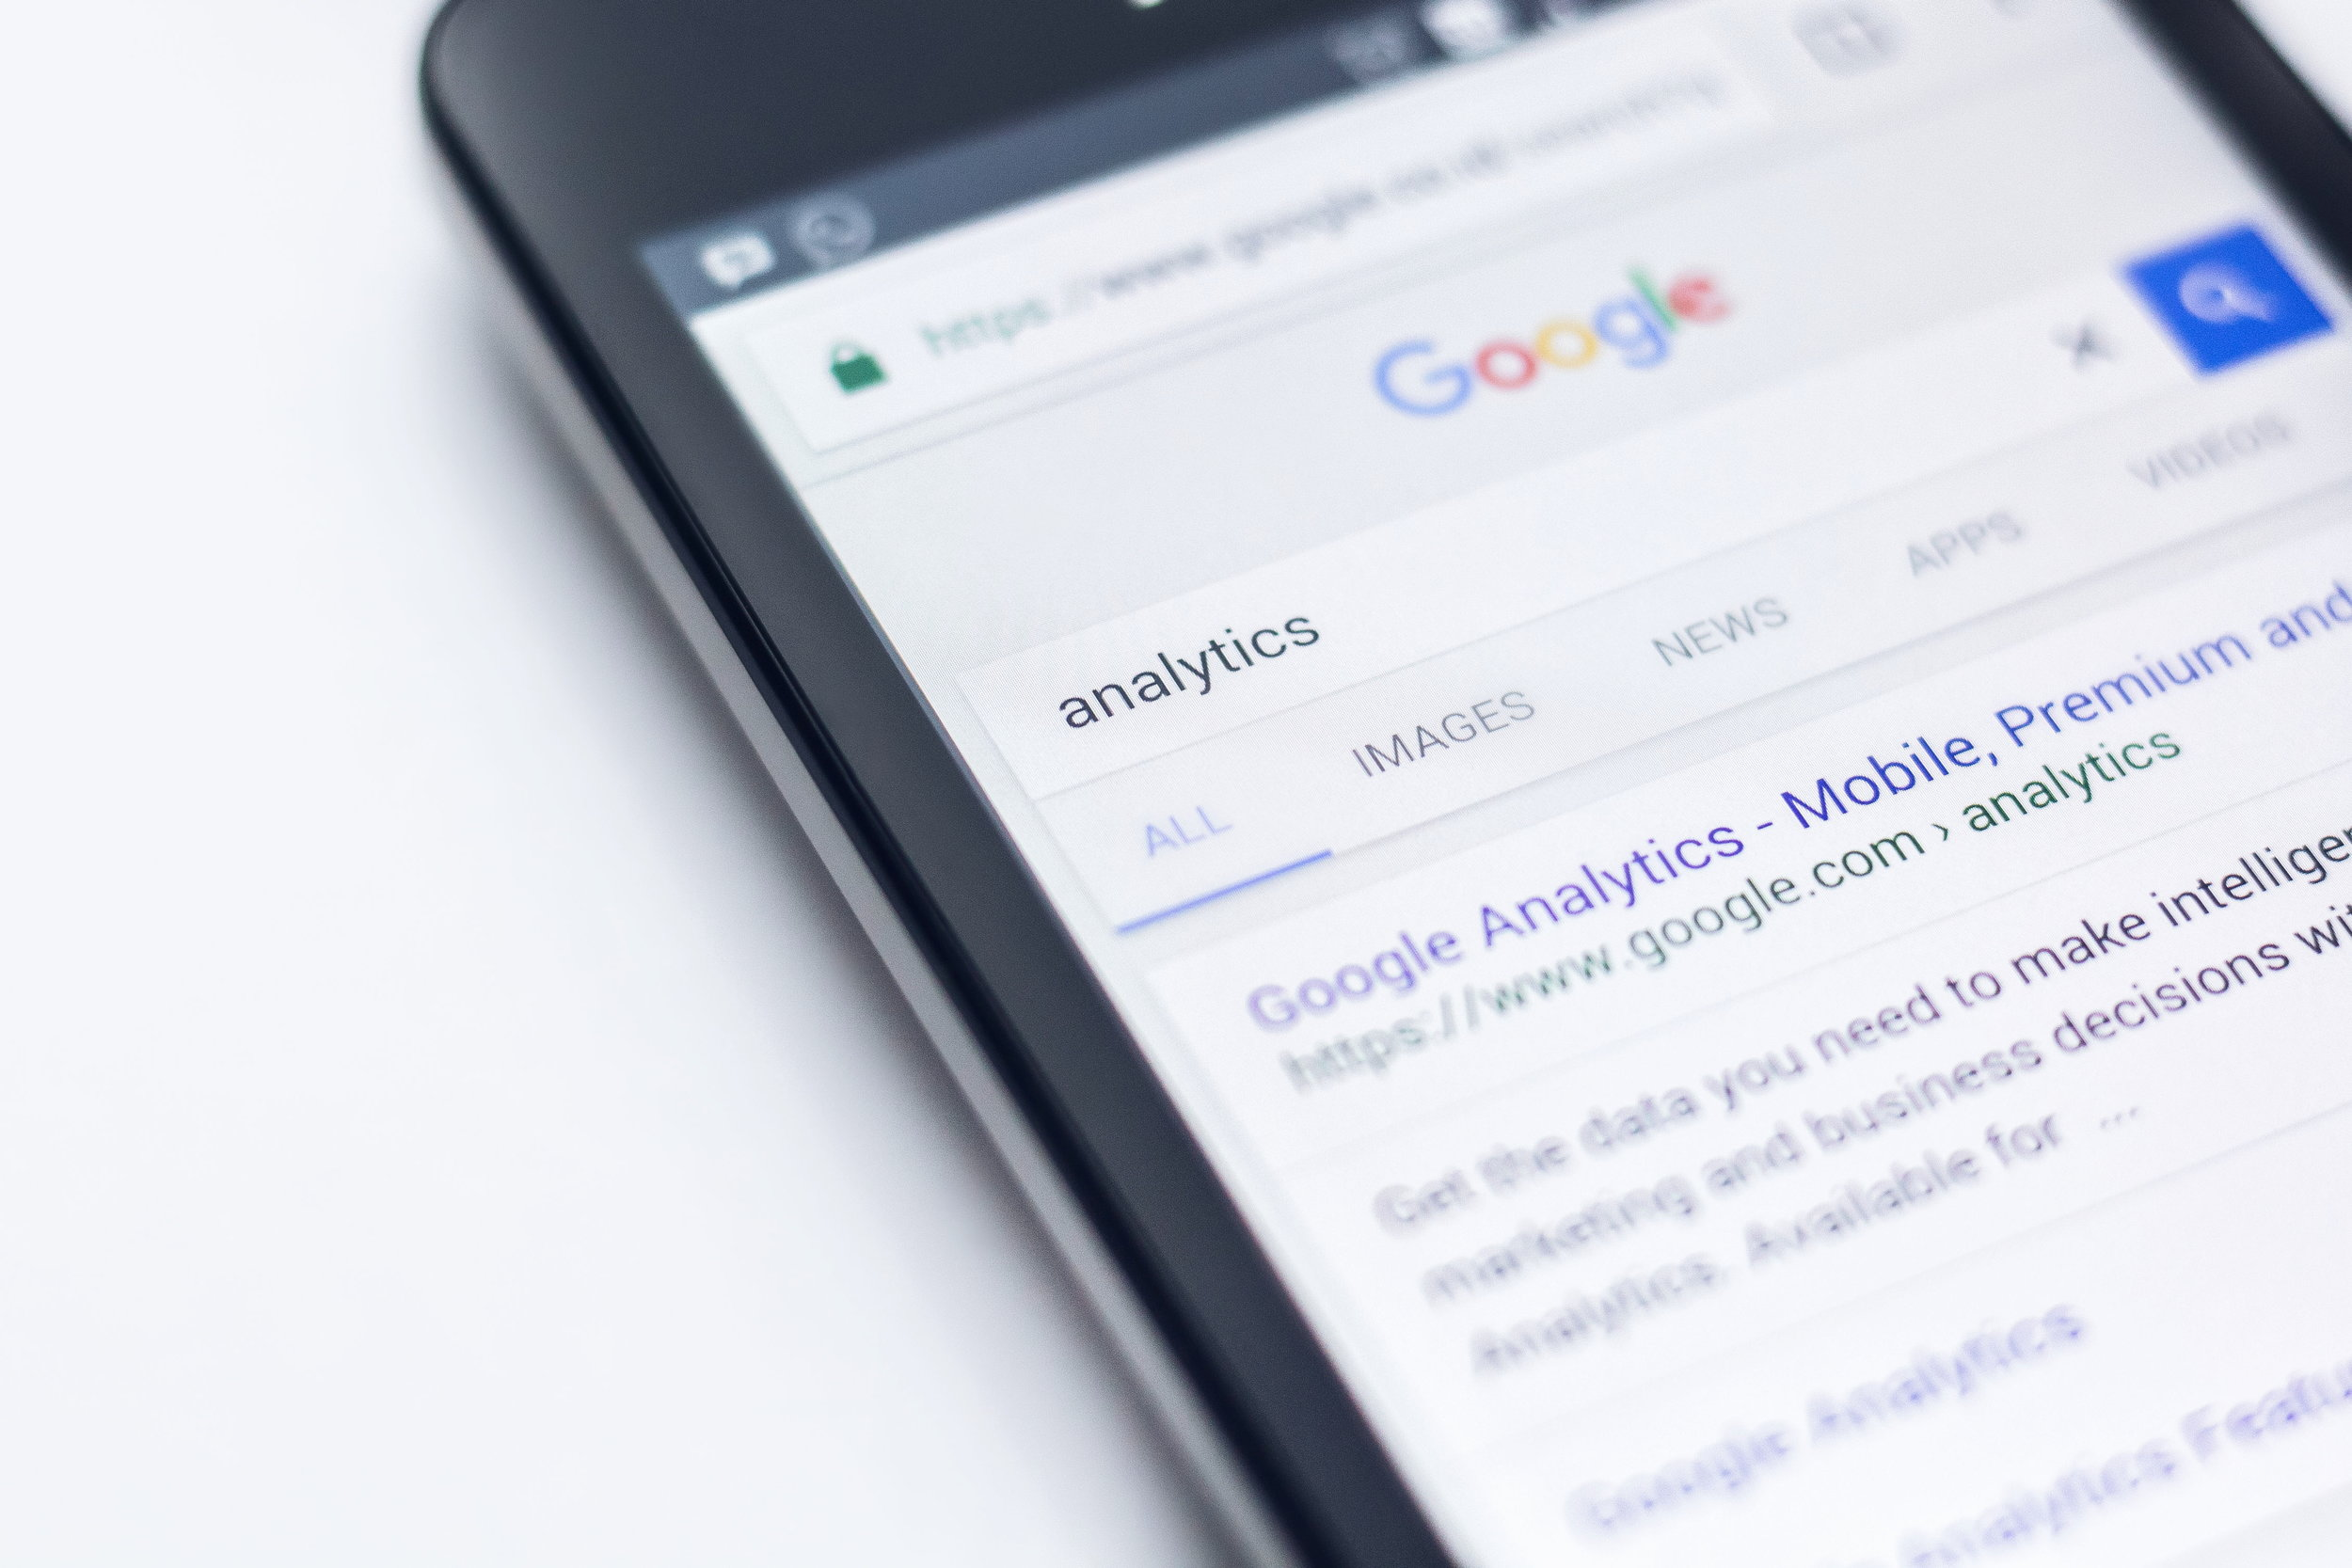 Paid Advertising - Search ads and native social ads have become an important part of a business strategy. Ads can give proven content a more prominent stage, whether it's in maximizing reach to an existing audience or launching campaigns in a new market.